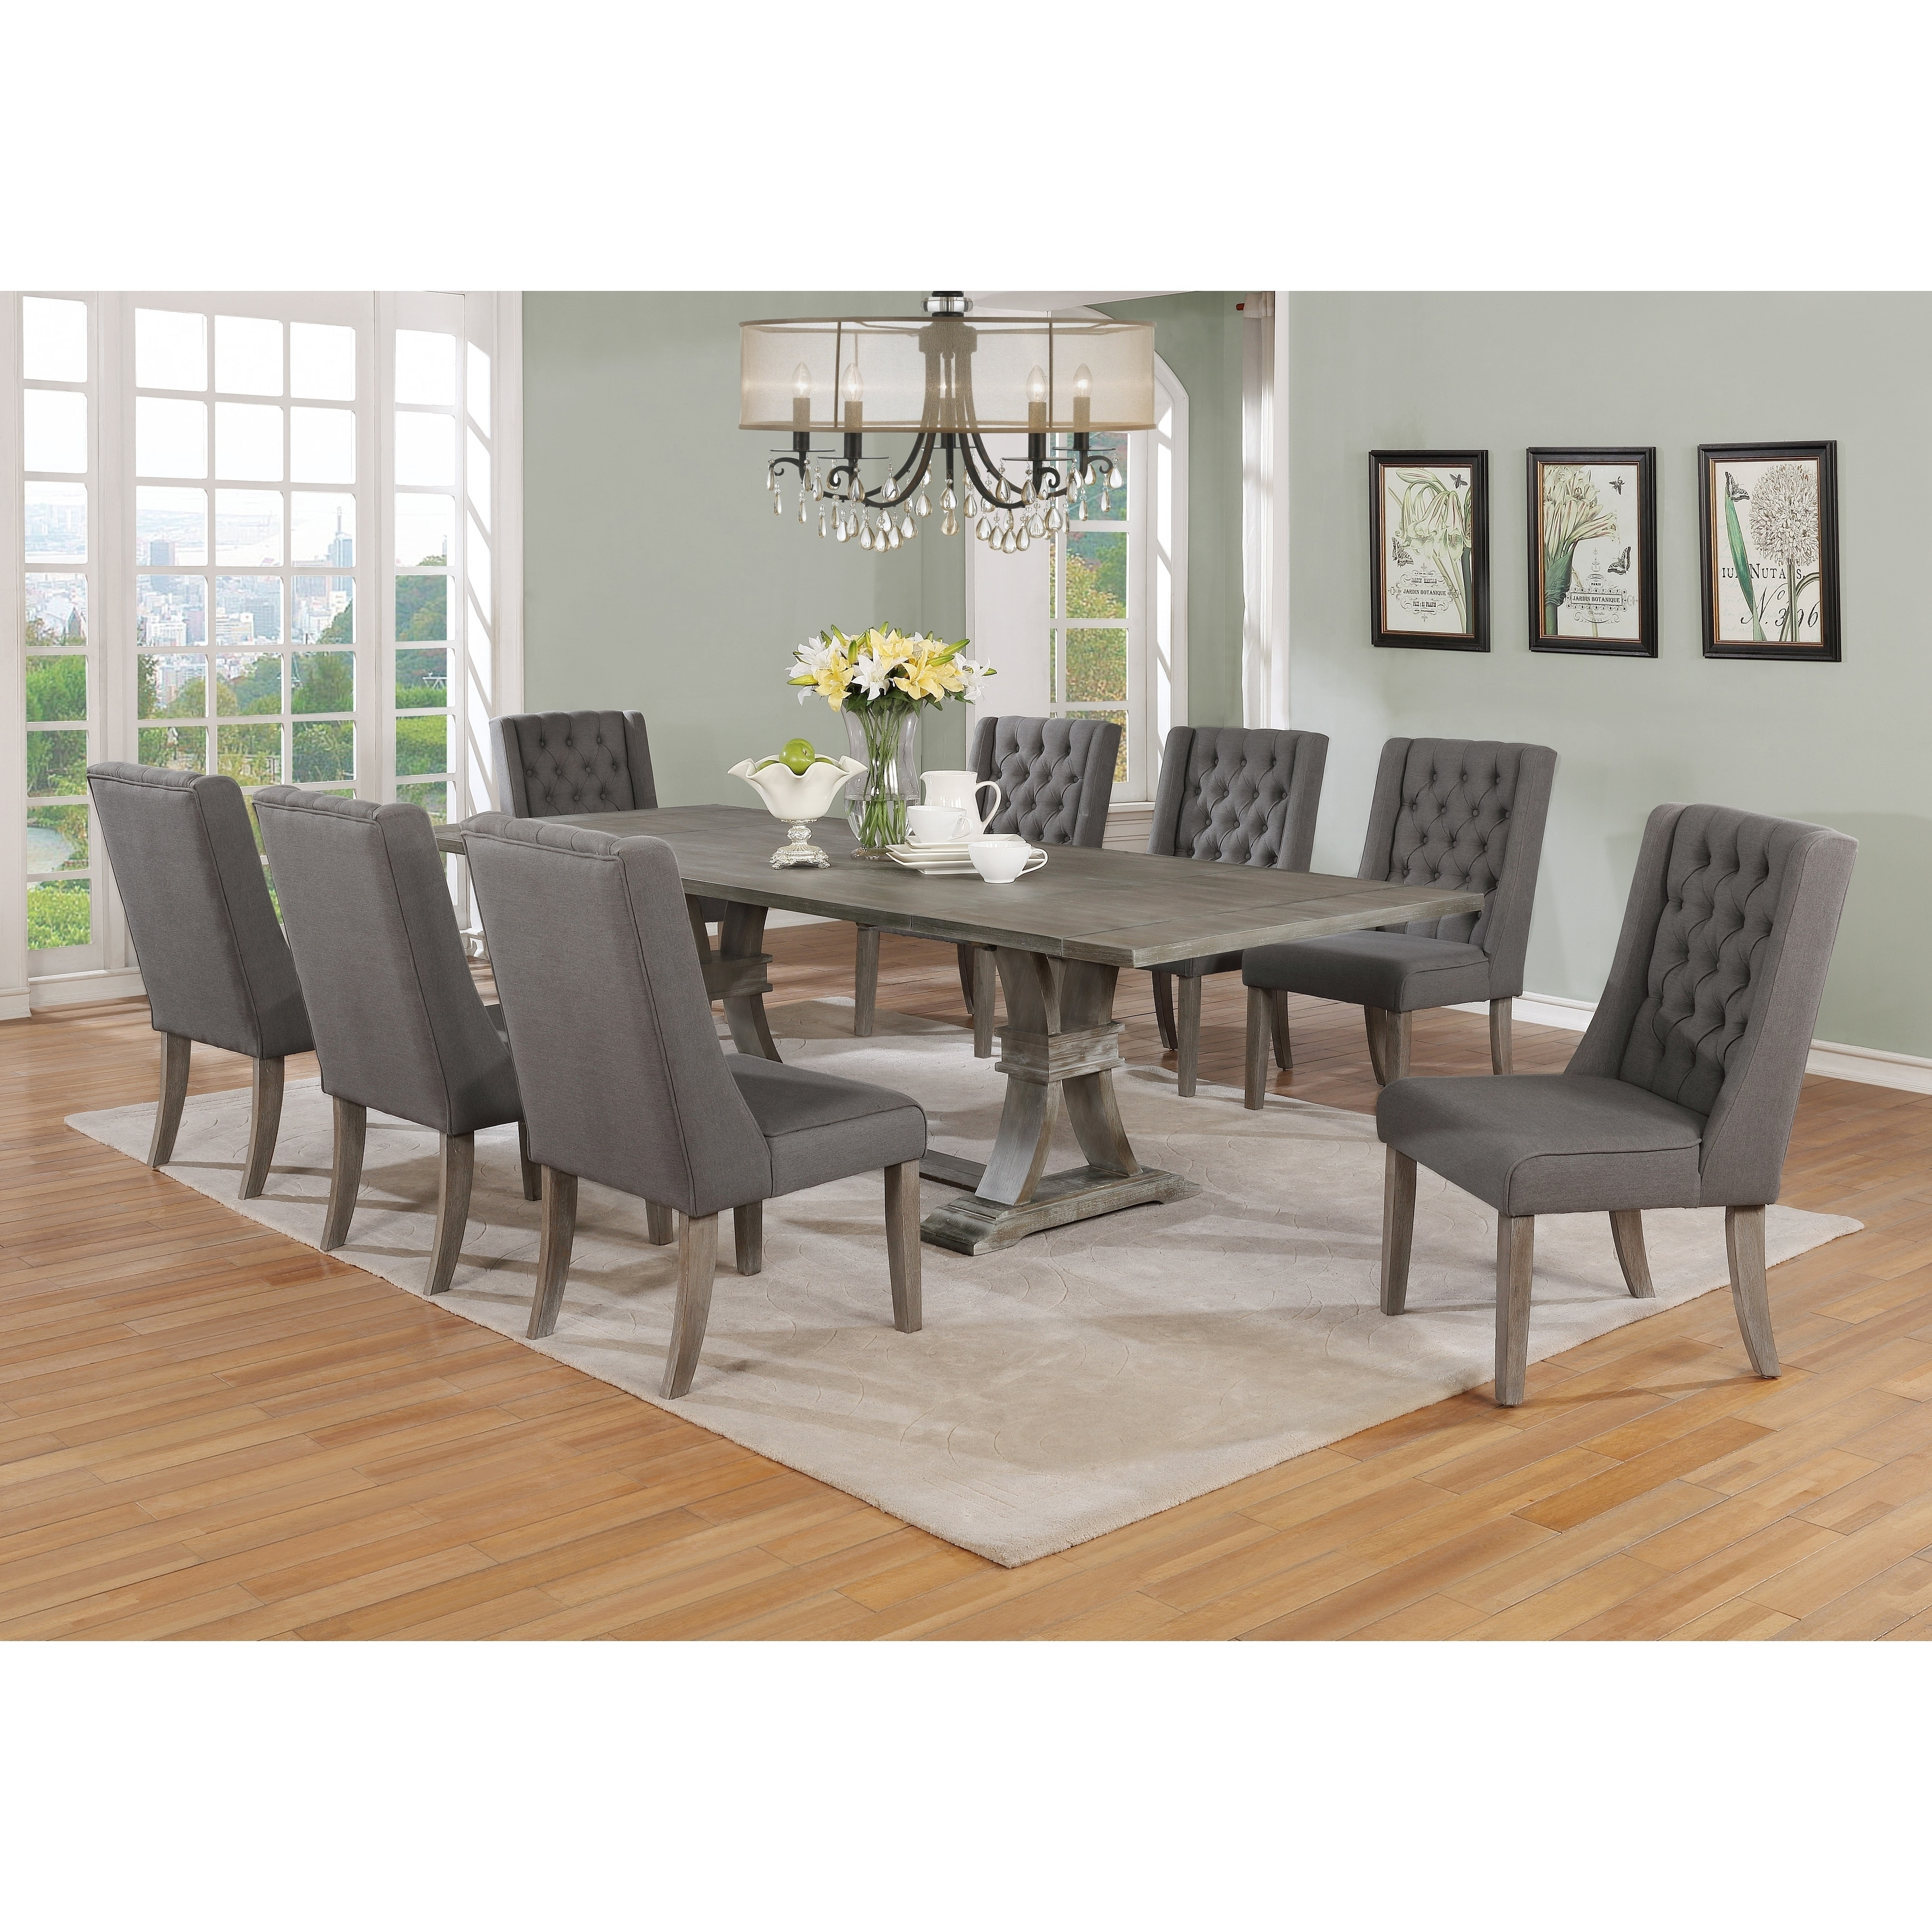 Best Quality Furniture 9 piece Rustic Extending Grey Dining Set